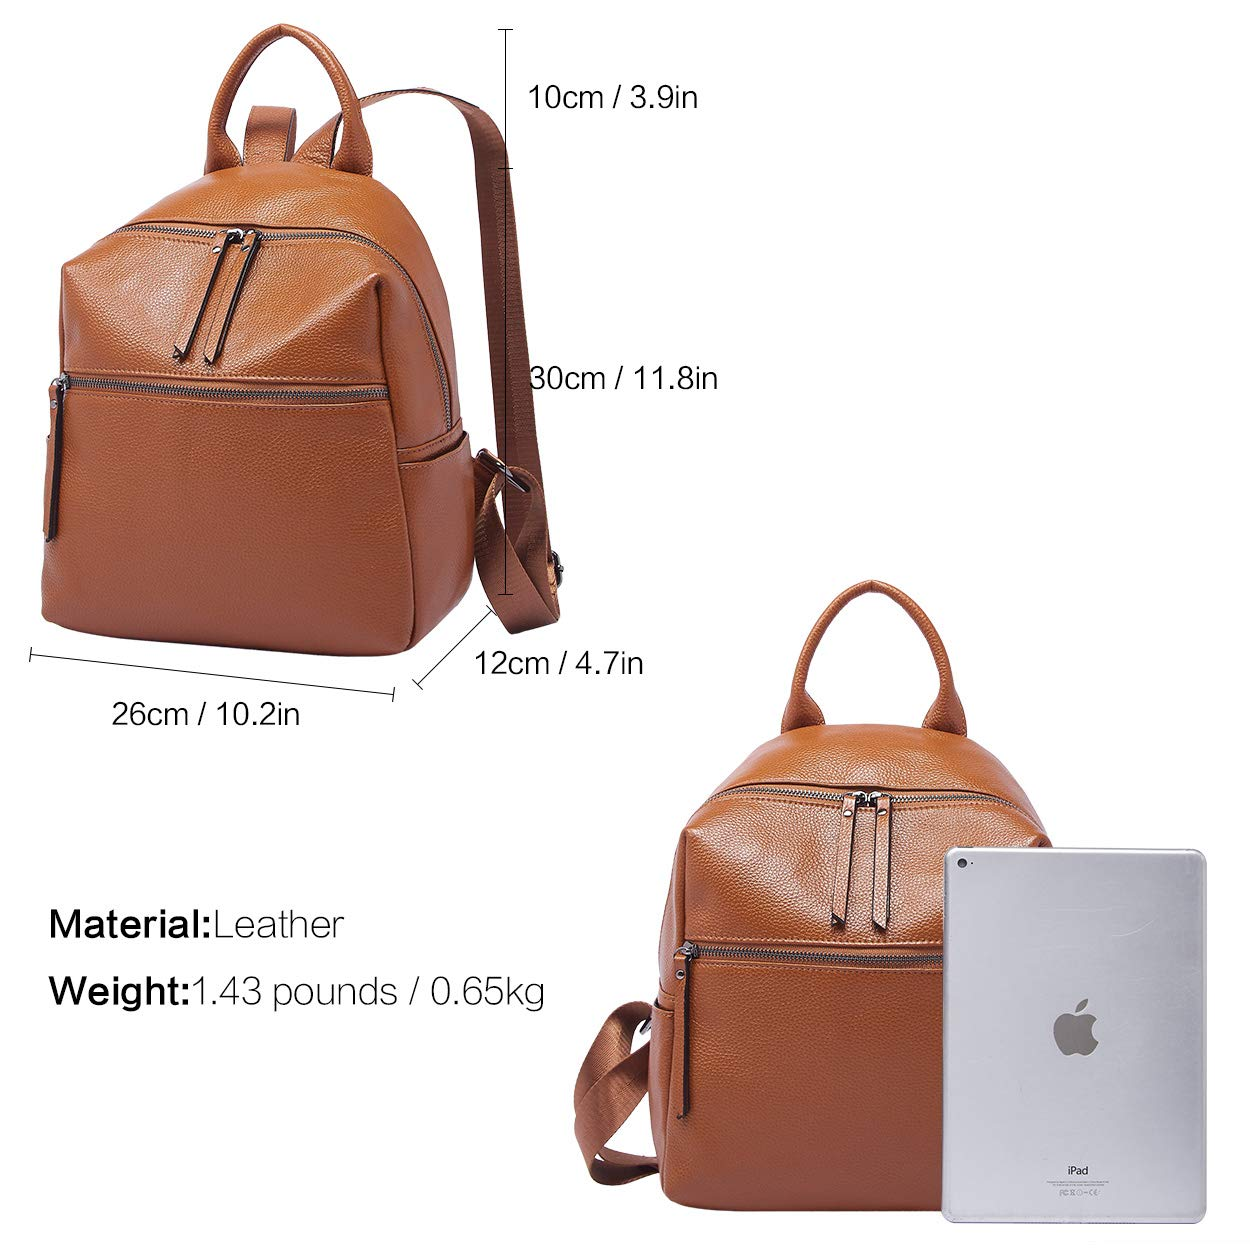 BOYATU Genuine Leather Backpack Purse for Women Anti-theft Small Shoulder Bags by BOYATU (Image #3)